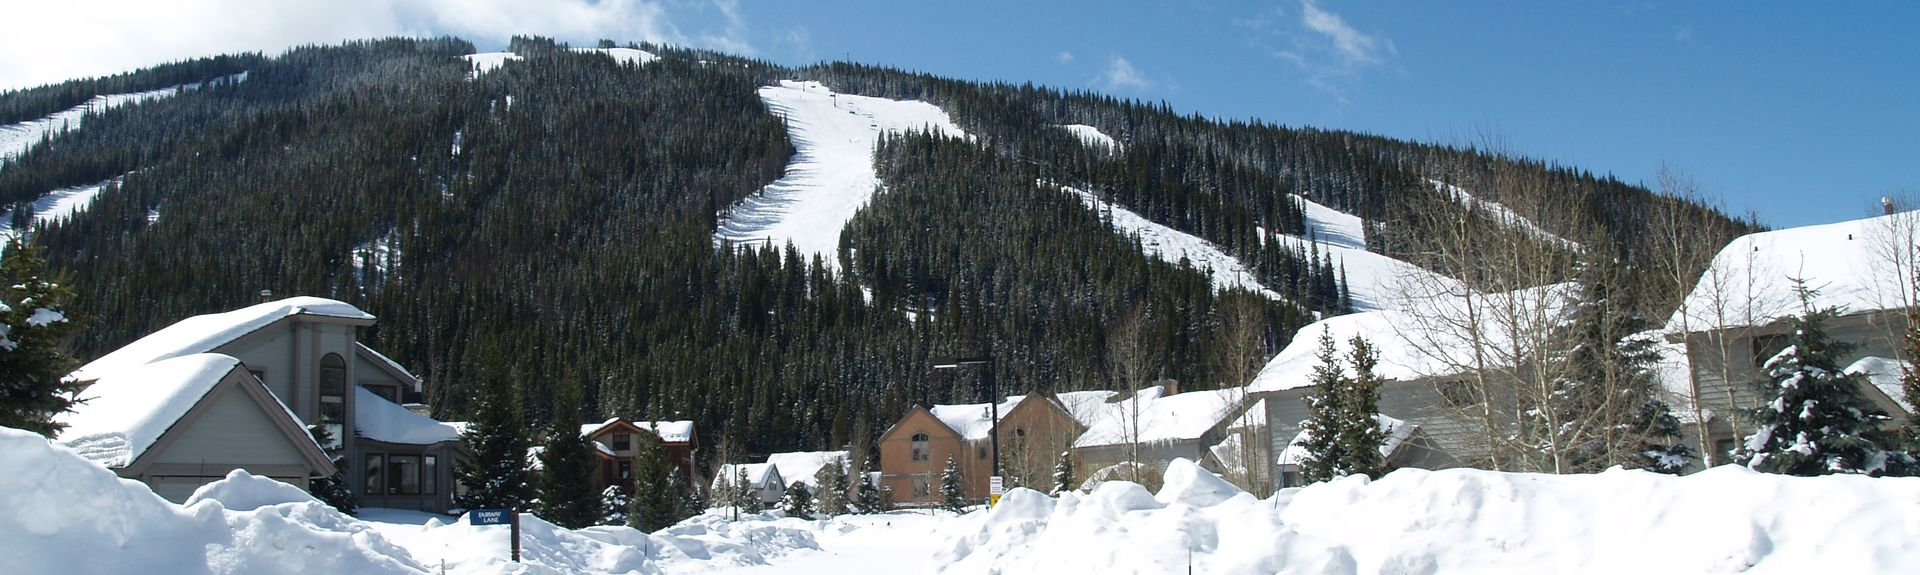 East Village at Copper, Copper Mountain, CO, USA